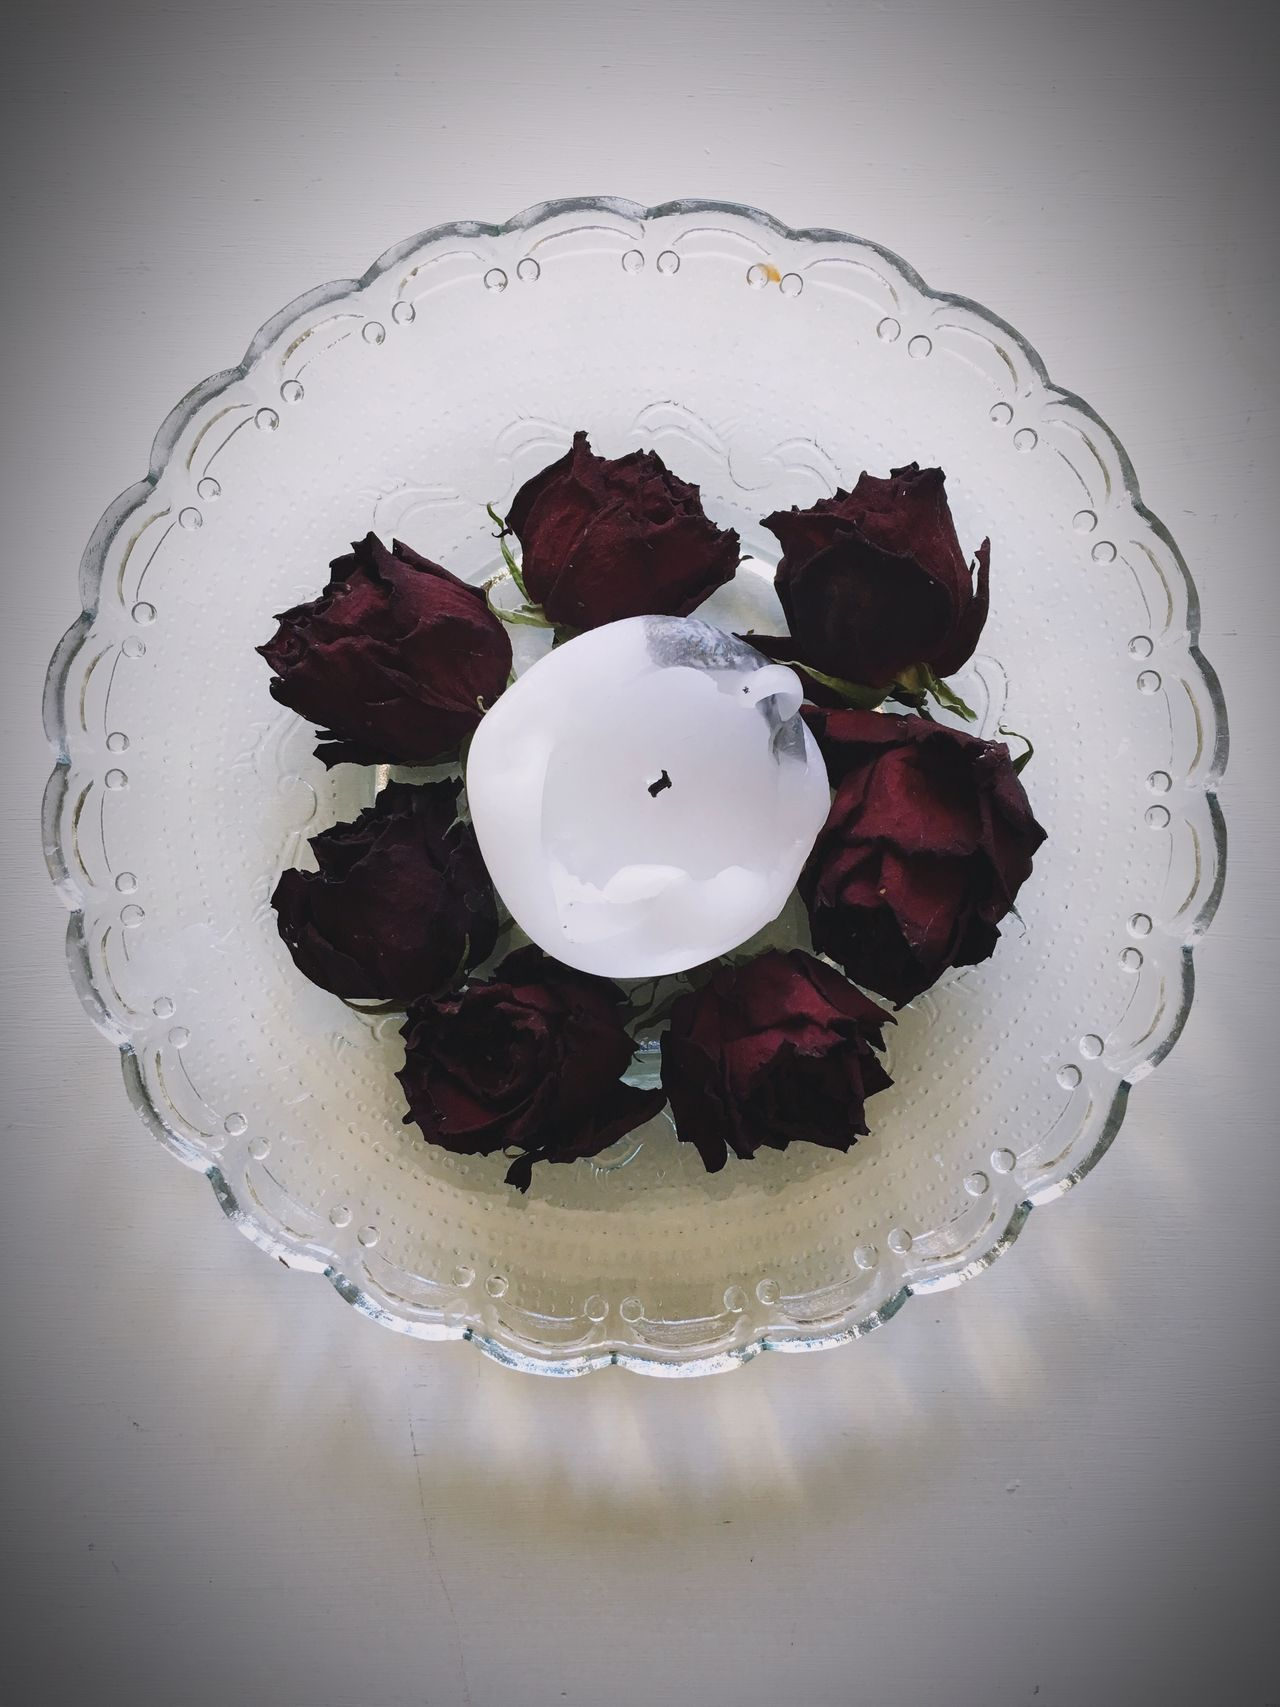 Candle Candles Candle Light Candlelight Roses Rose🌹 Rose♥ Rose - Flower Roses🌹 Roses_collection Showcase March Glass Plate Pattern Pattern Pieces Top Down Top Down View Dry Flower  Dry